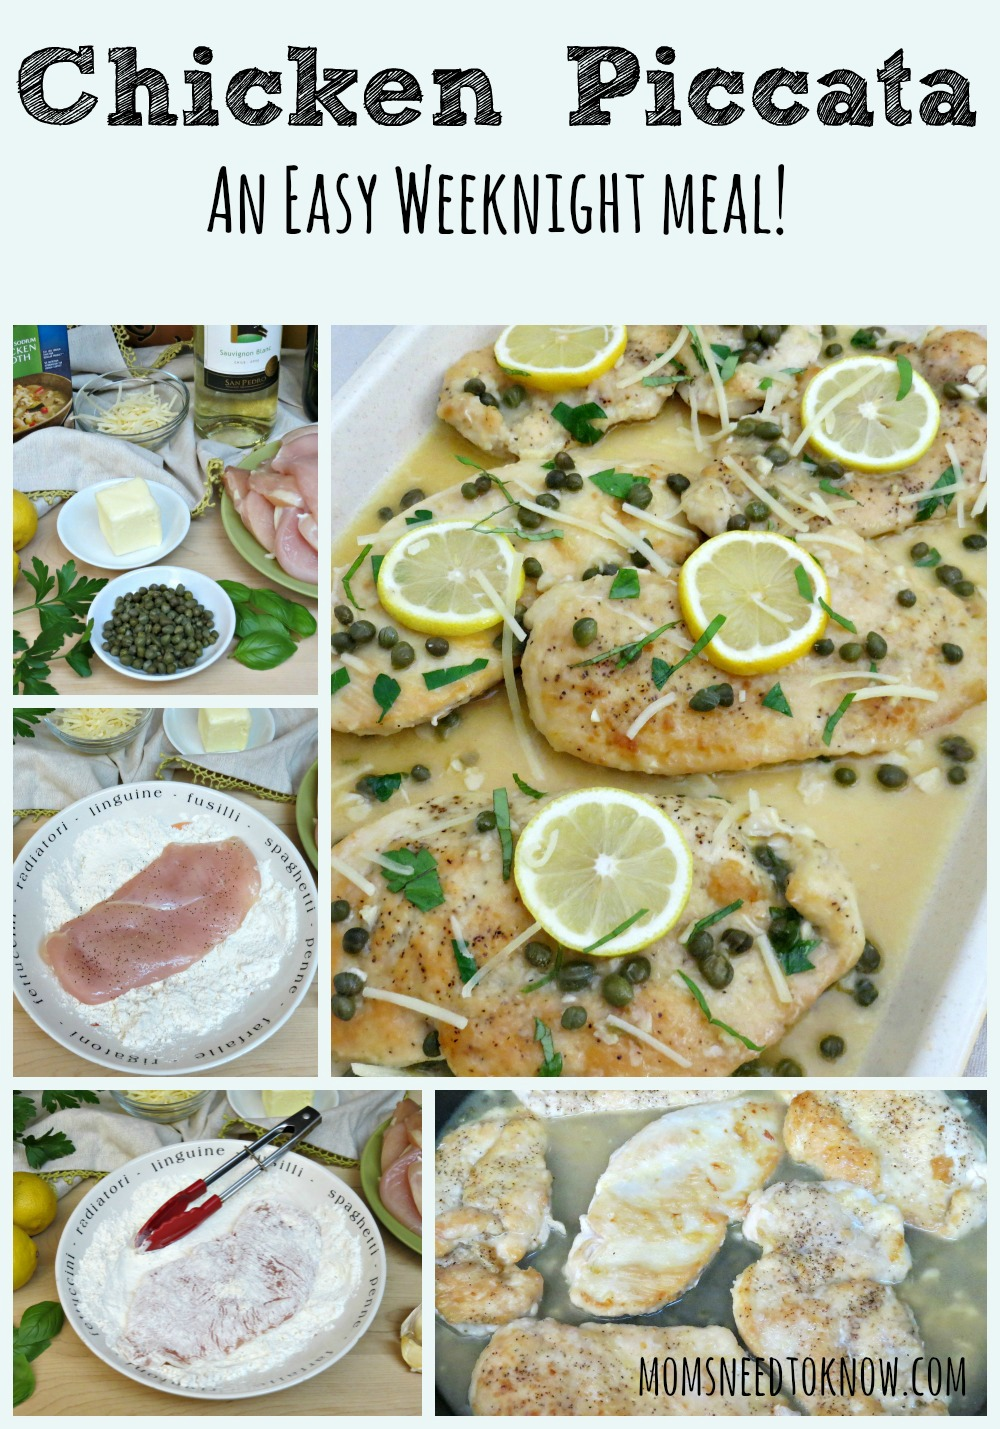 Chicken Piccata Recipe collage